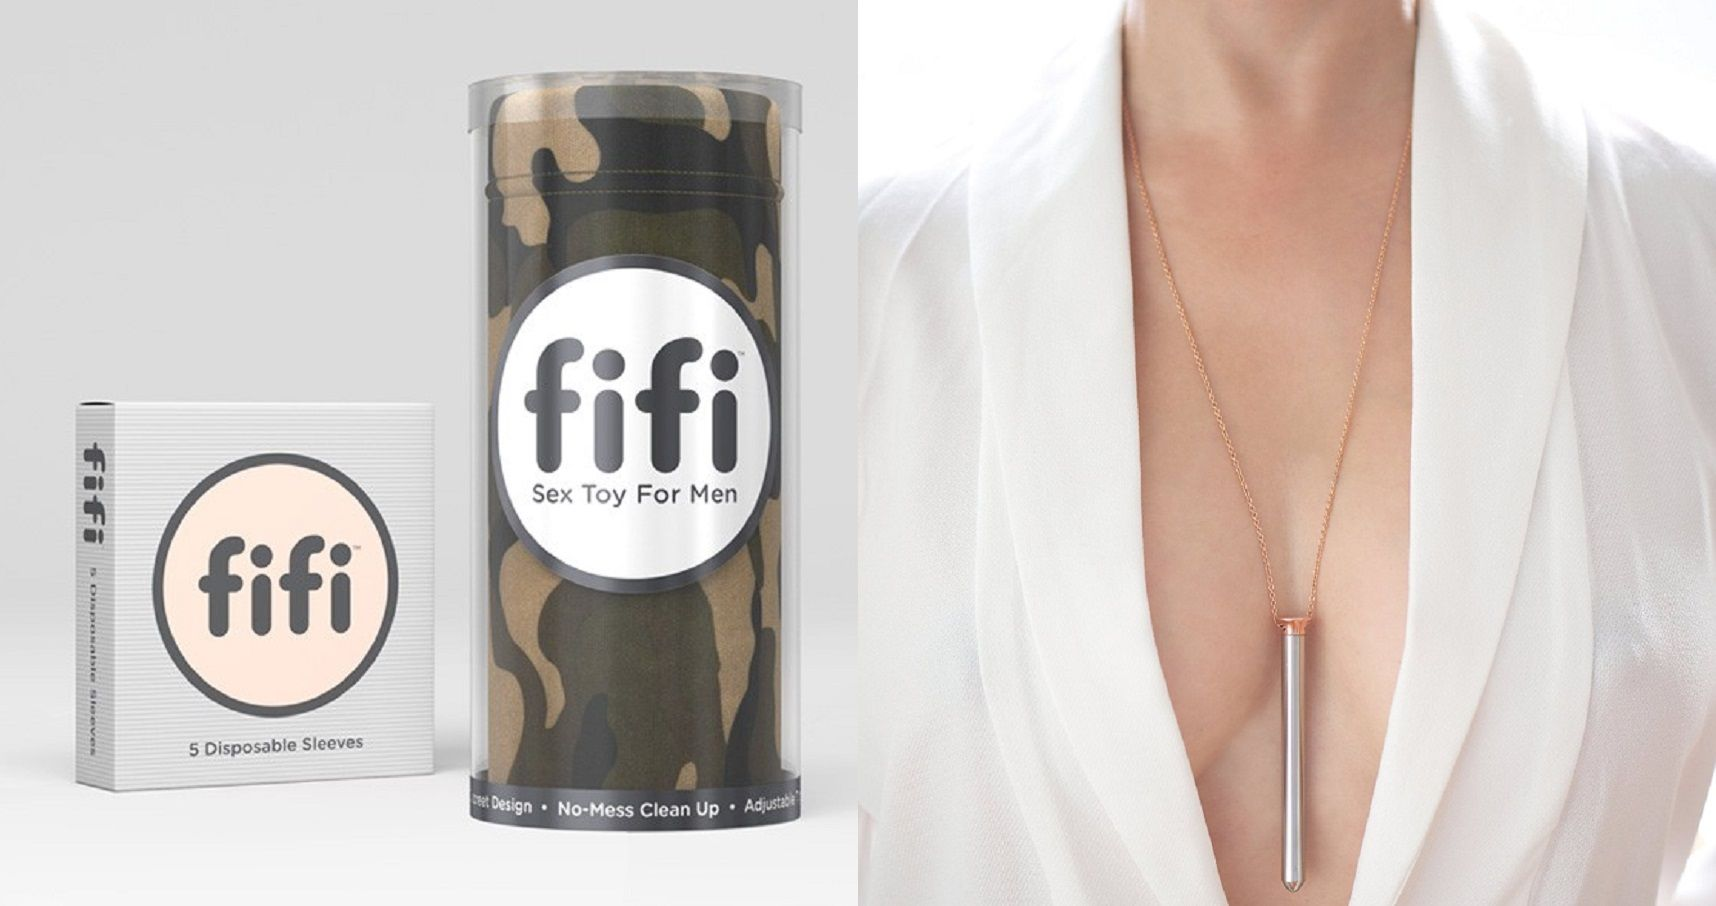 The 10 Most Discreet Adult Toys